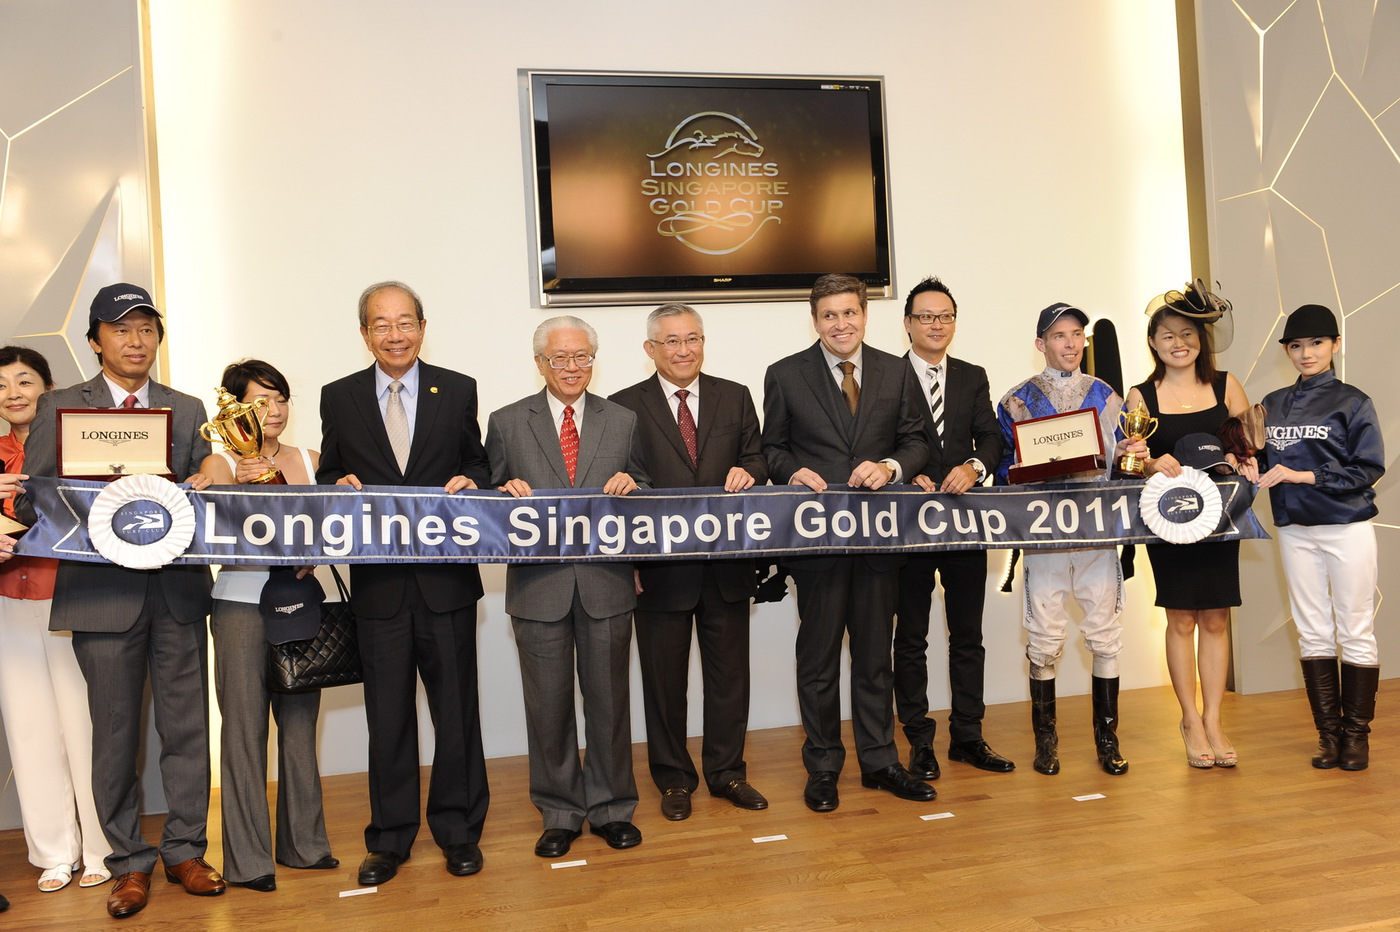 Longines Flat Racing Event: LONGINES SINGAPORE GOLD CUP 2011 raises S$241,136 for the Chaoyang School 17